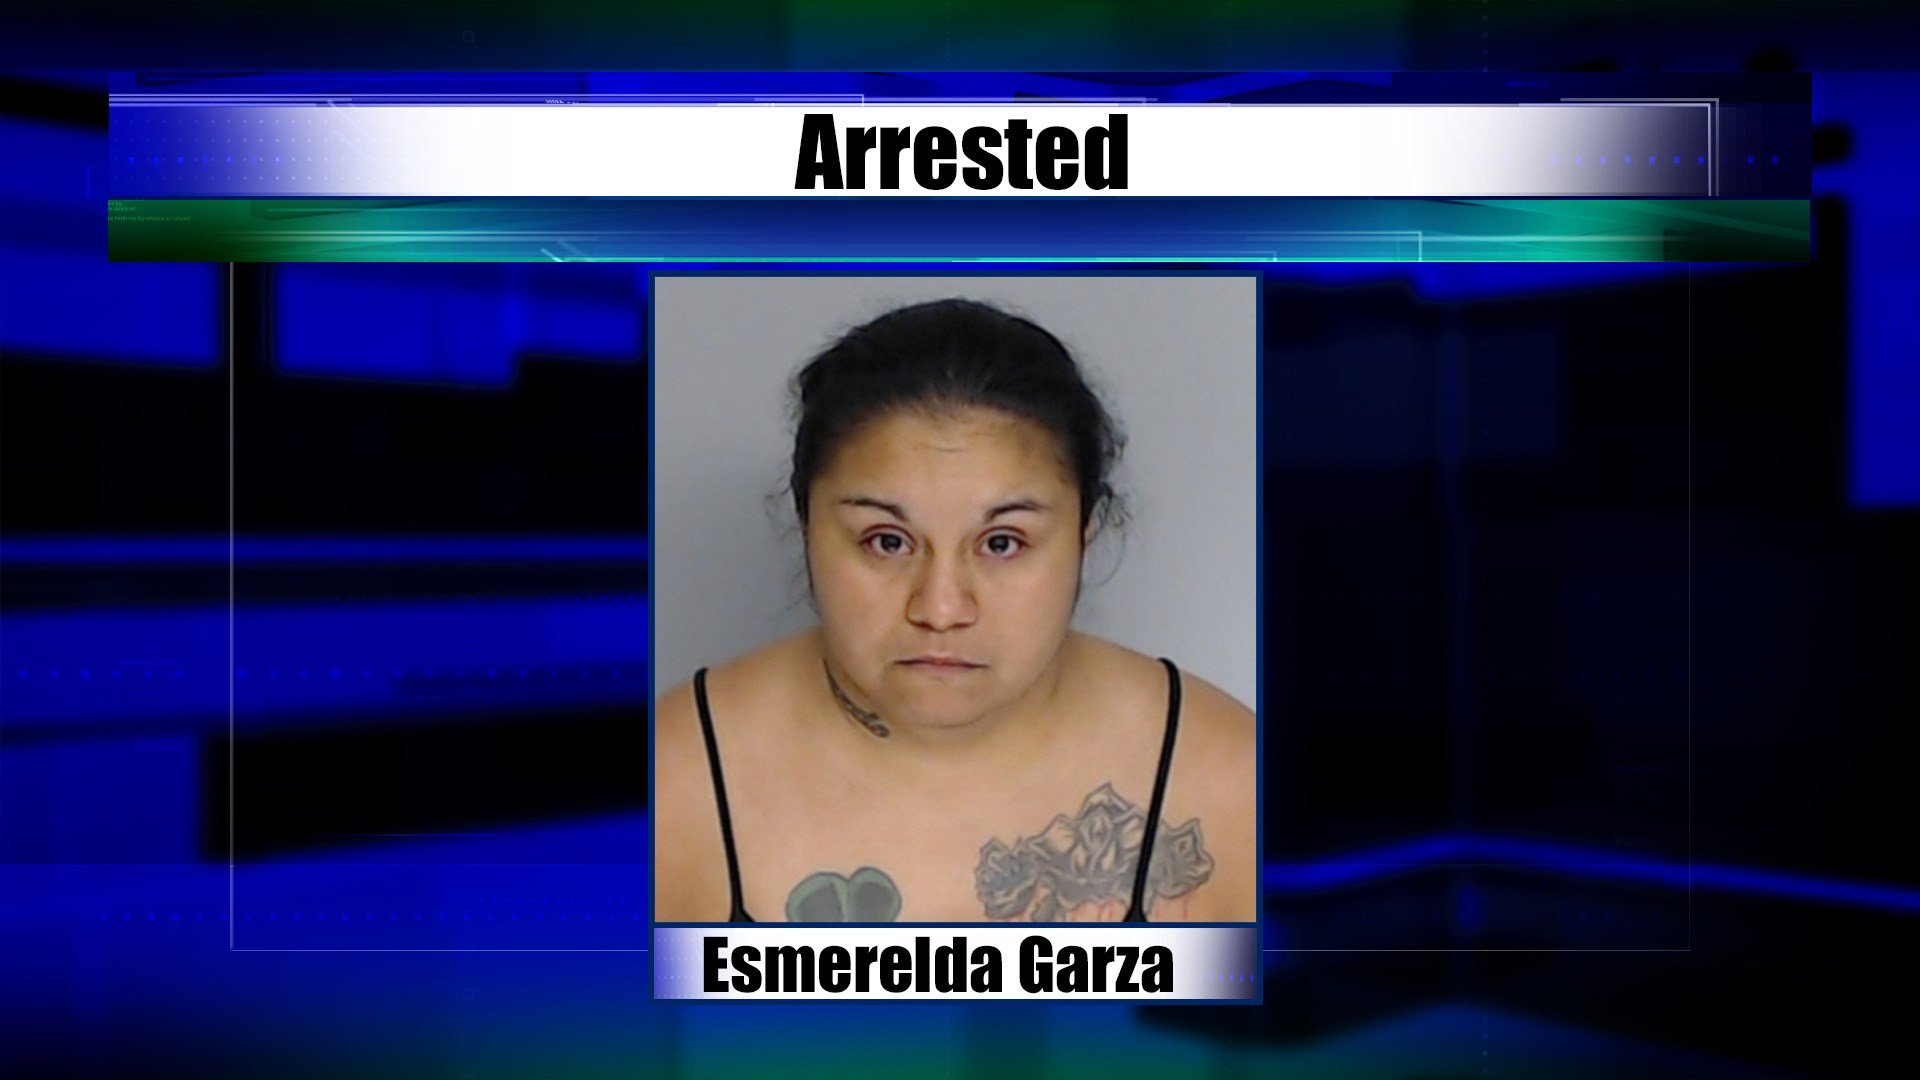 Texas Mother Arrested for Selling Her Son, Say Police